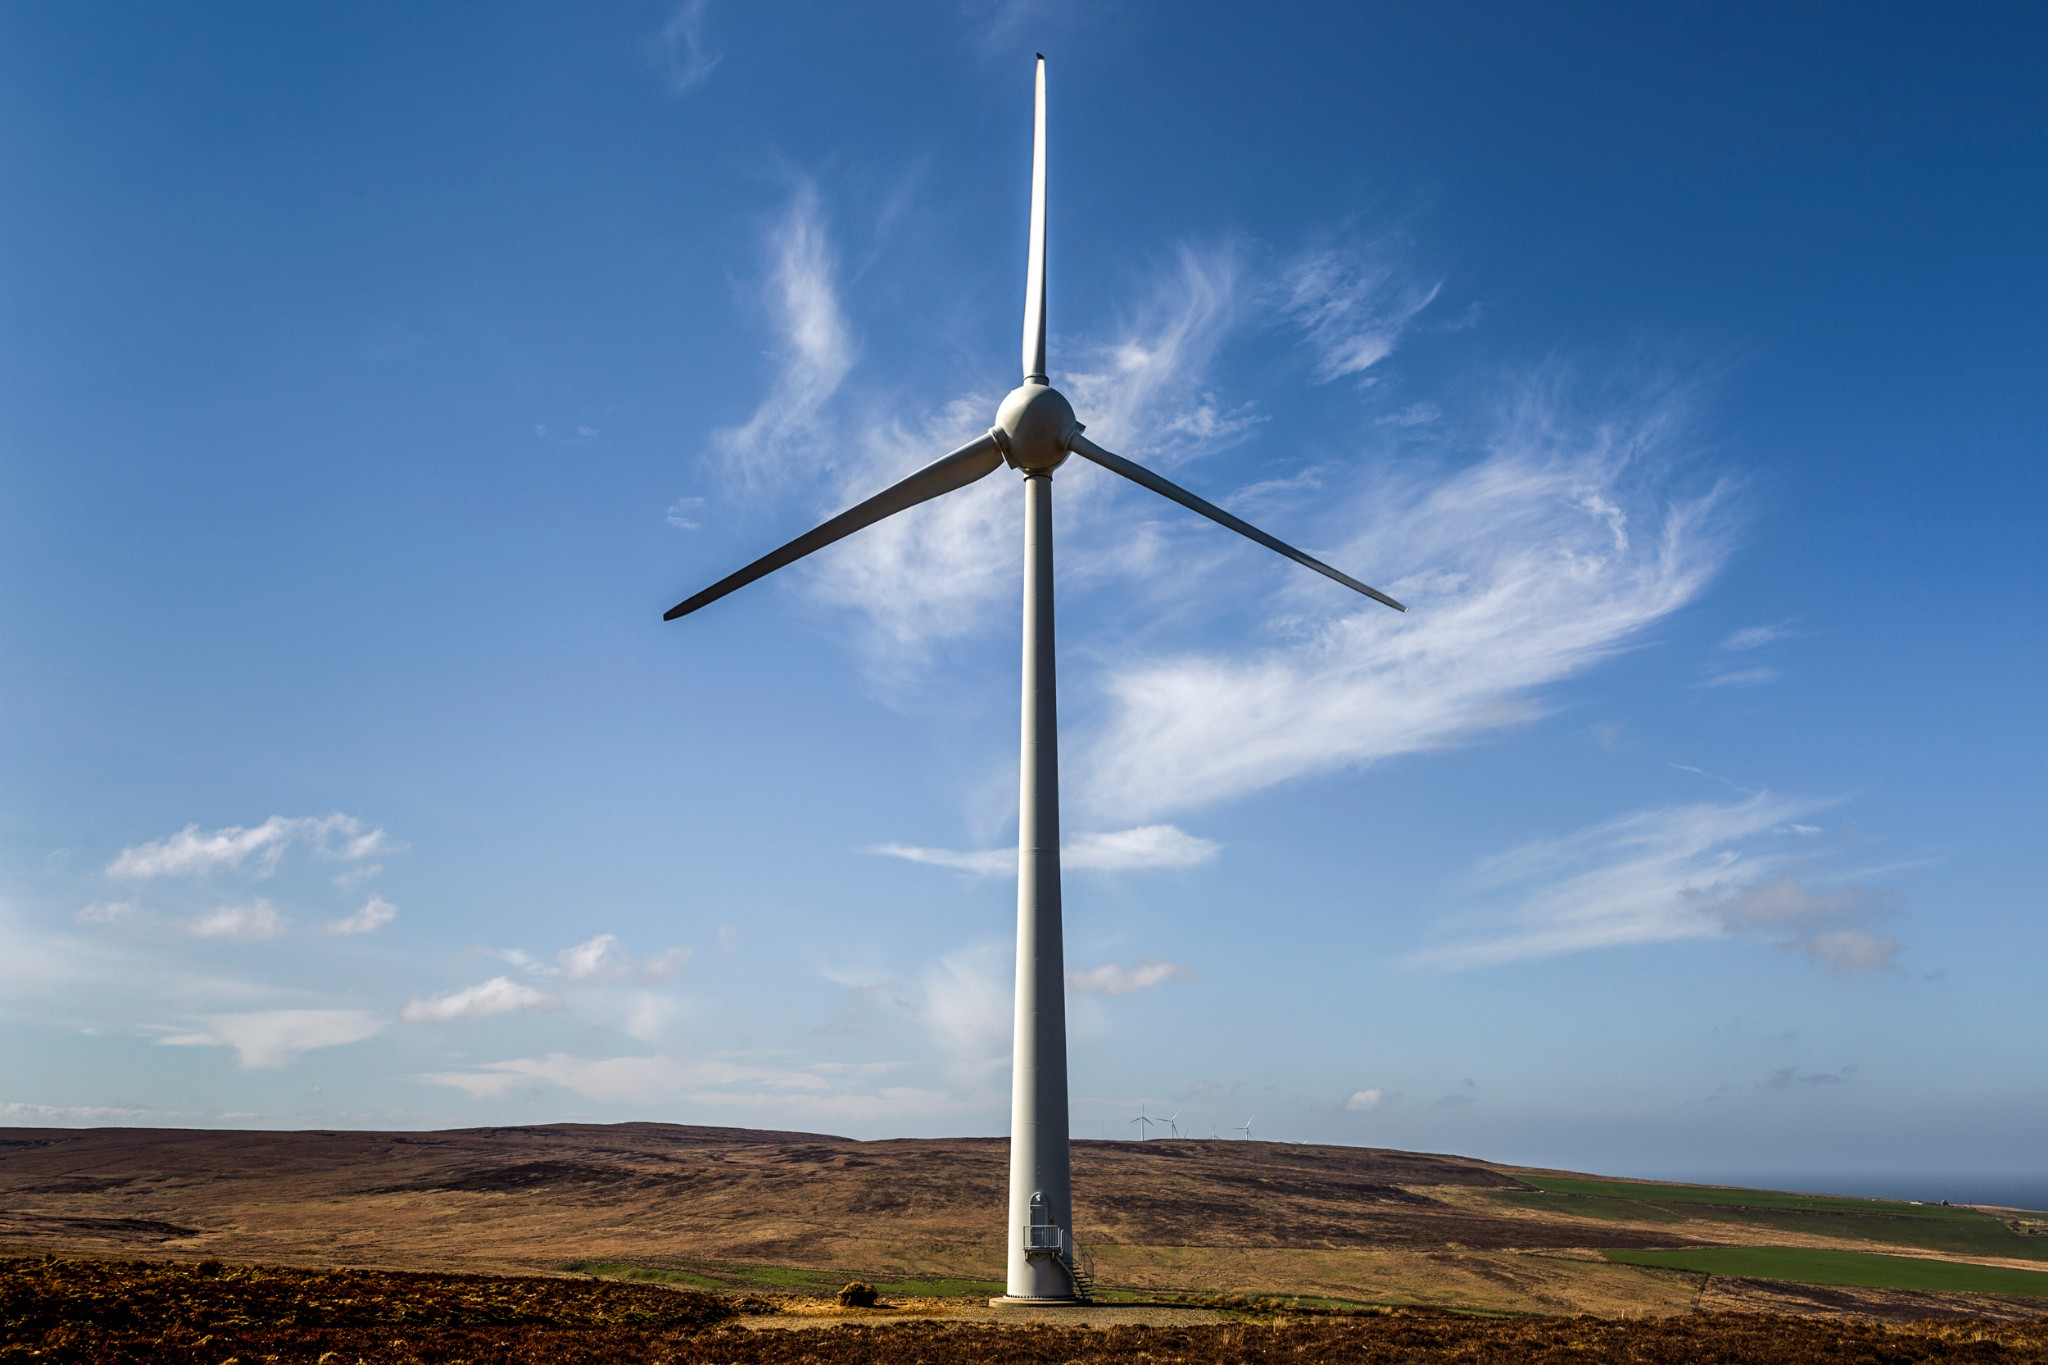 Wind turbine in Orkney - image by Luigi Avantaggiato